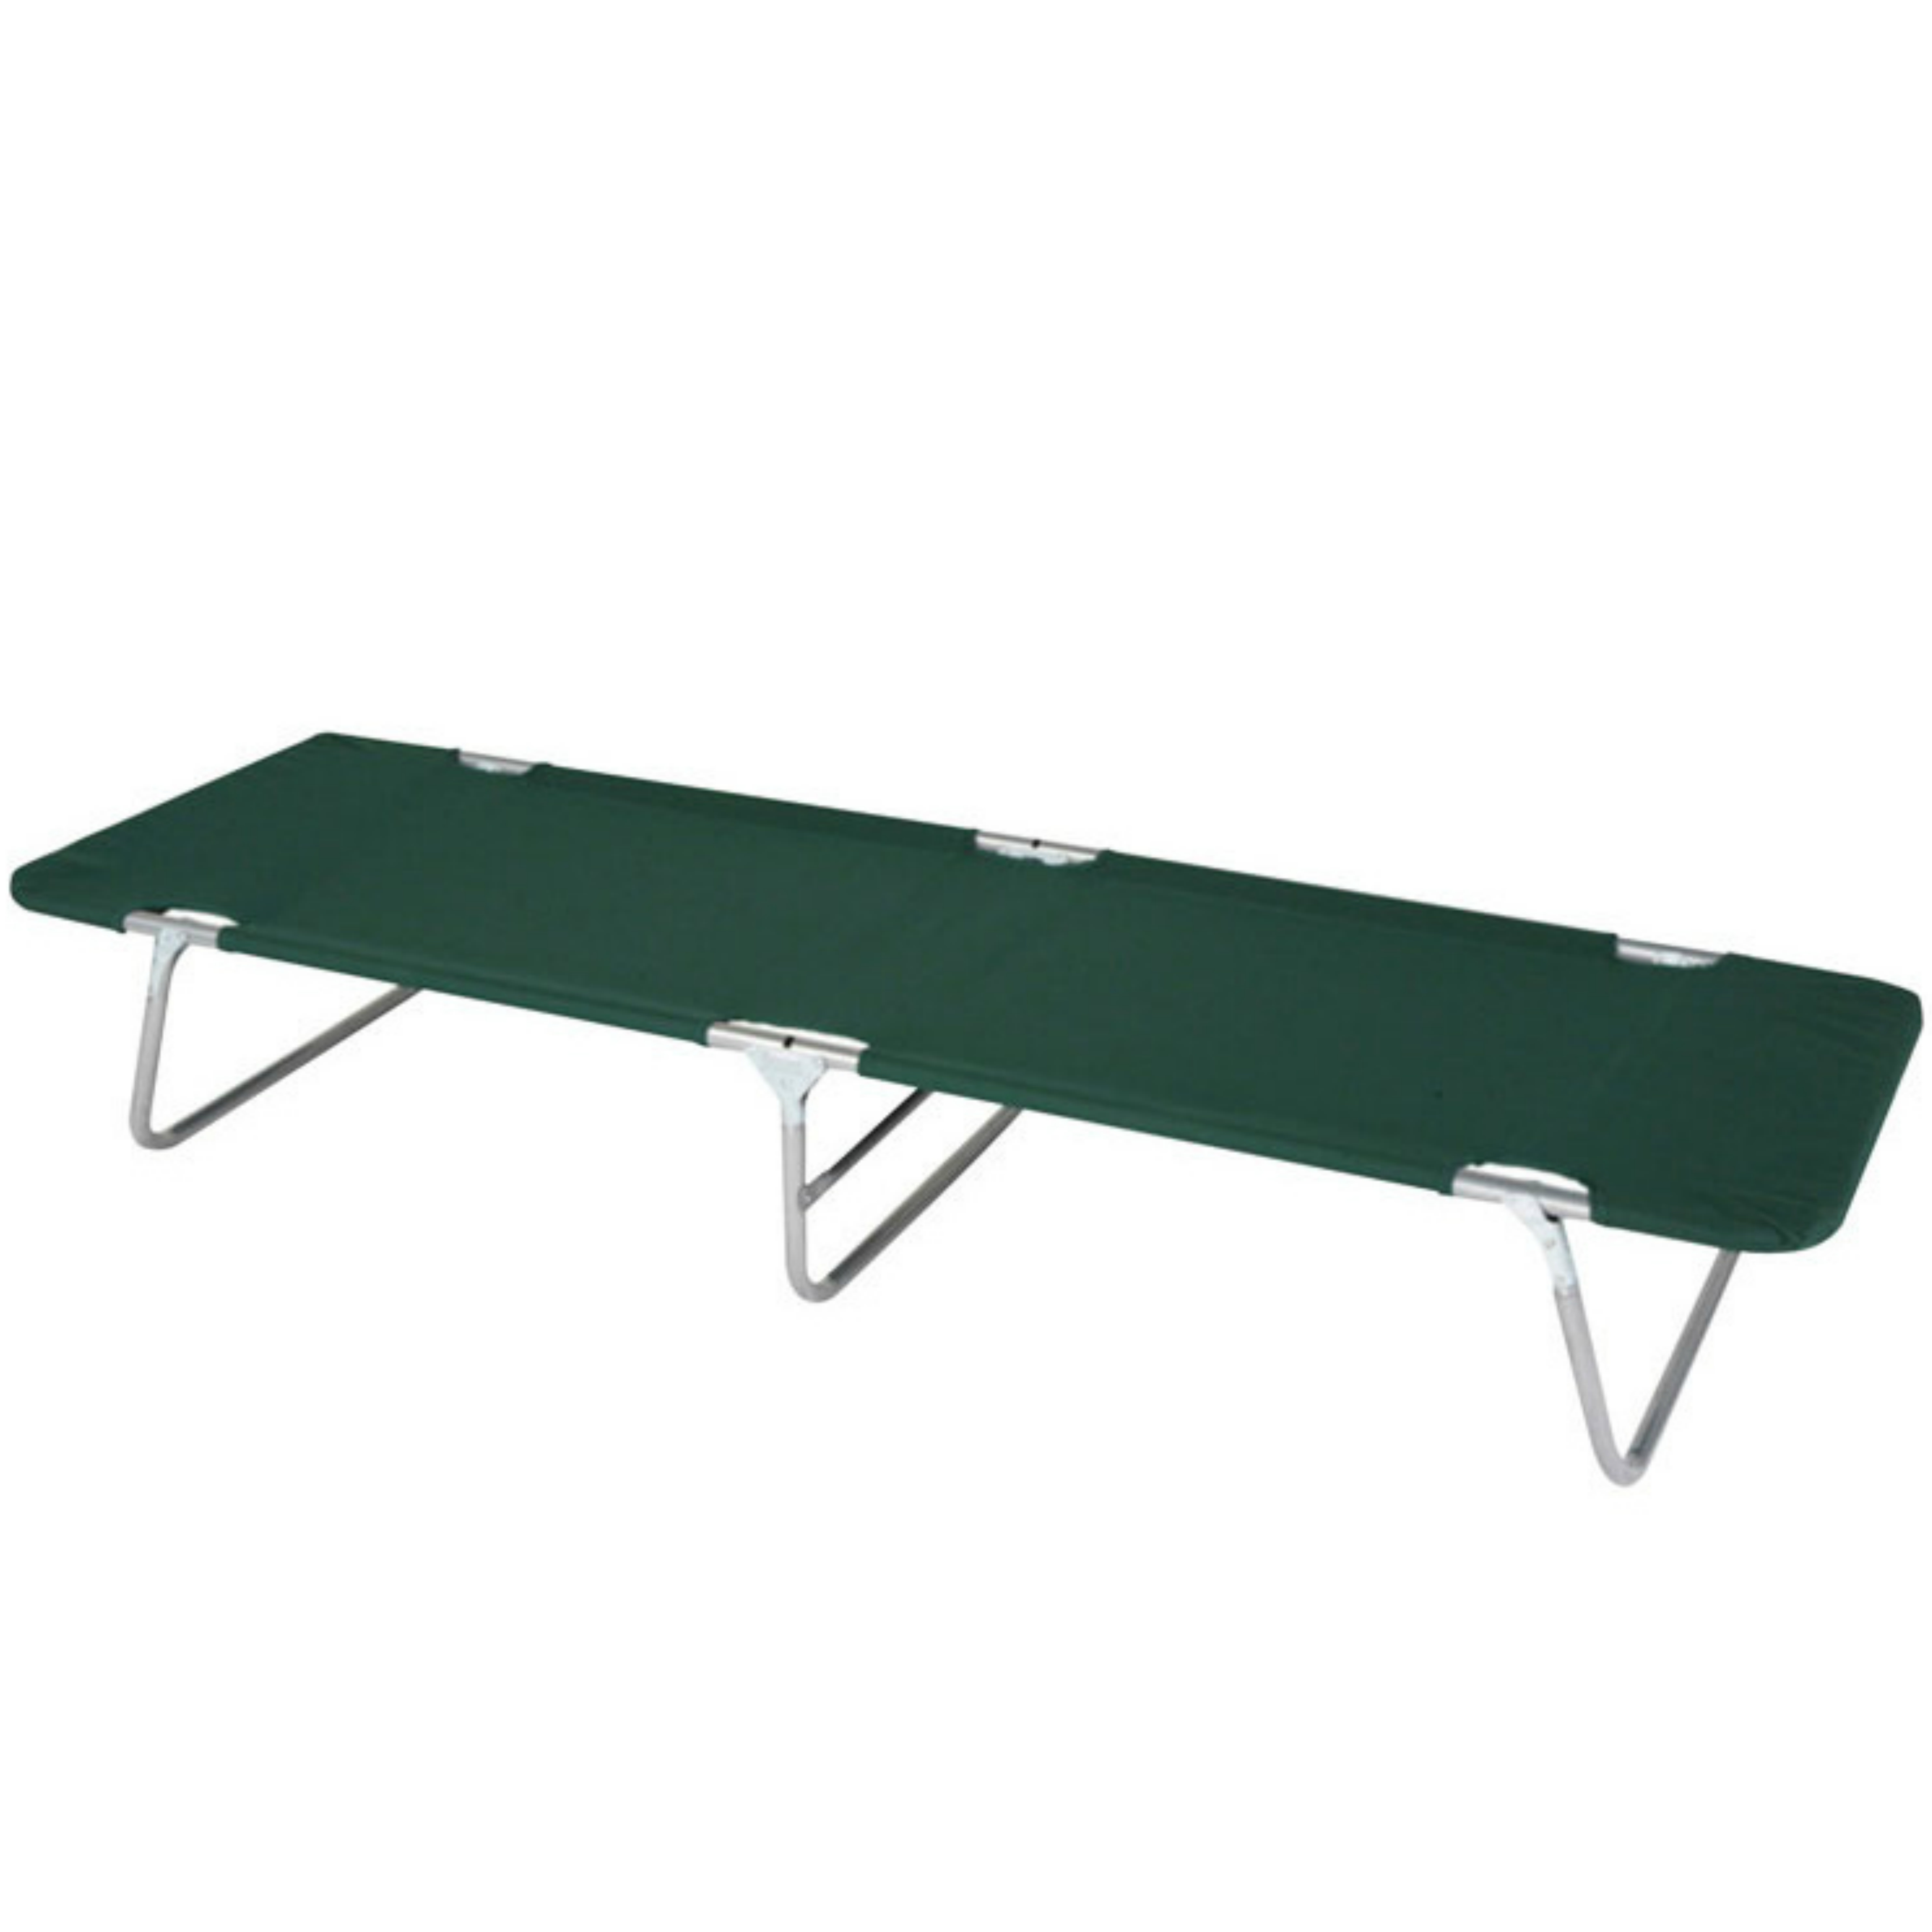 Wenzel-97928|Camp Cot-Green|Lightweight|Polyester|193x97x30.5 cm|Max Cap.113 Kg